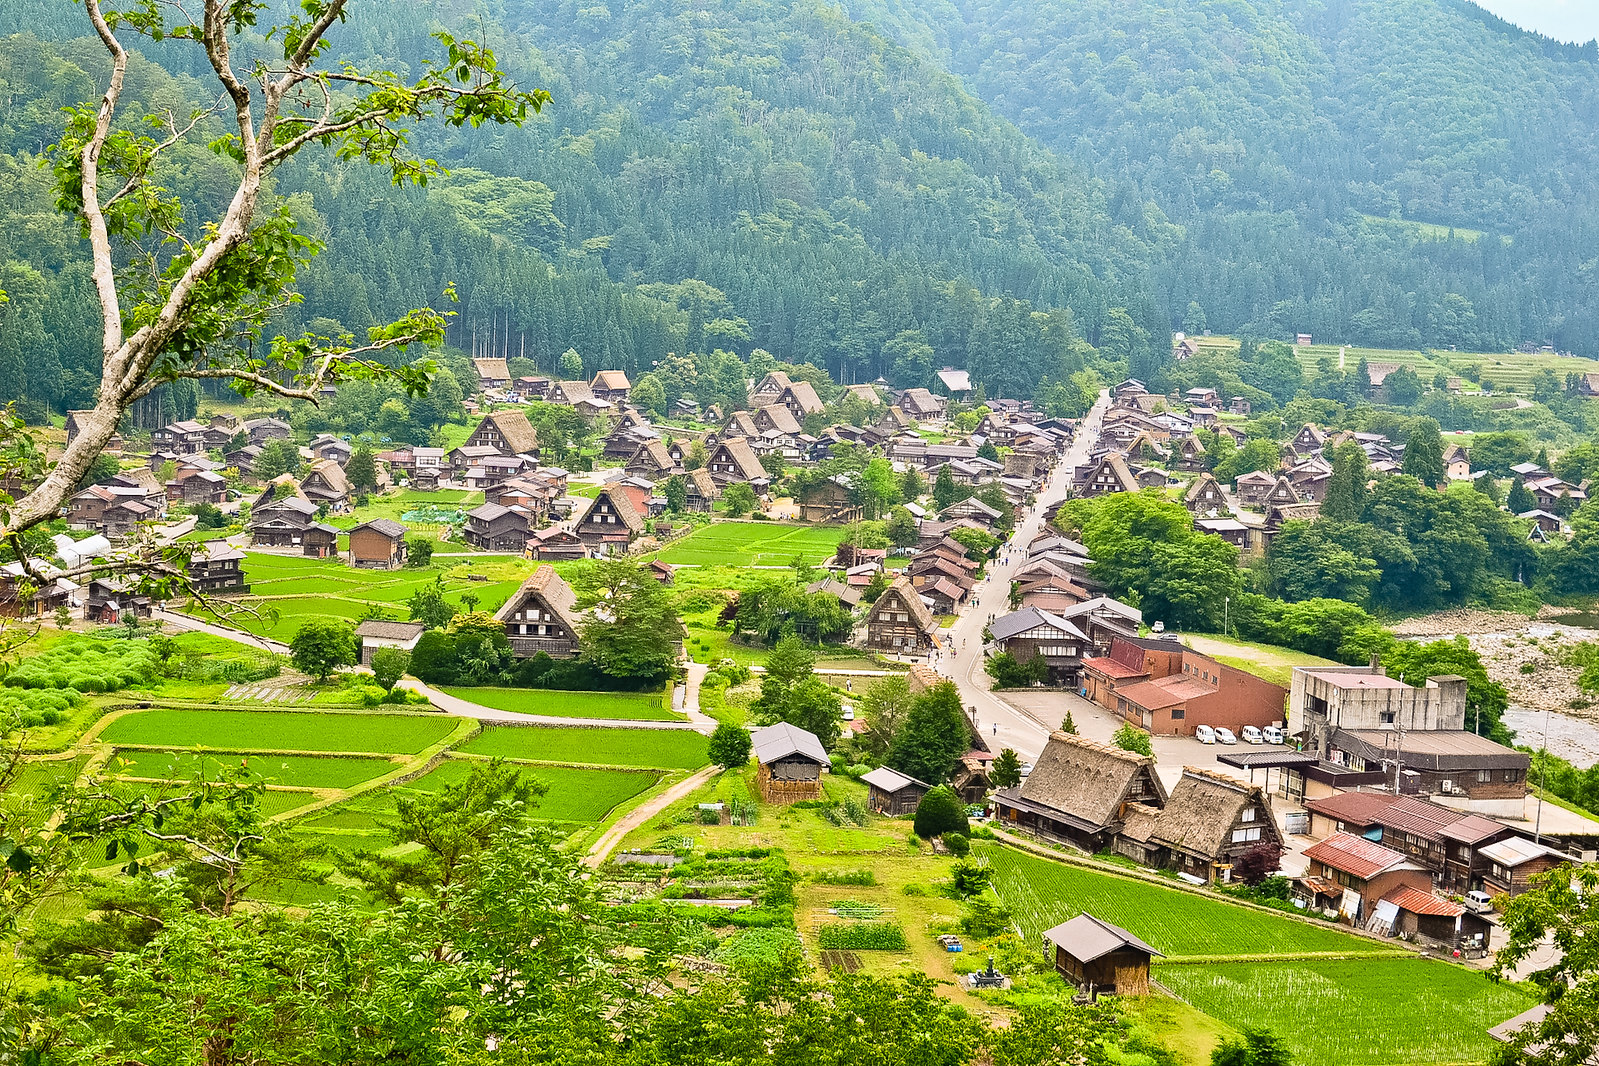 Shiroyama Viewpoint, Shirakawa-gō